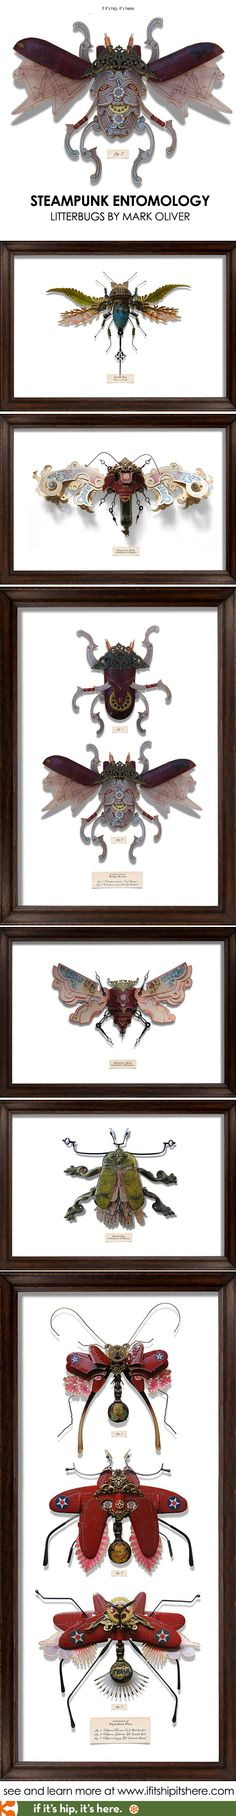 Beautiful sculptured insects made of paper and found objects. Litterbugs by Mark Oliver on if it's hip, it's here.